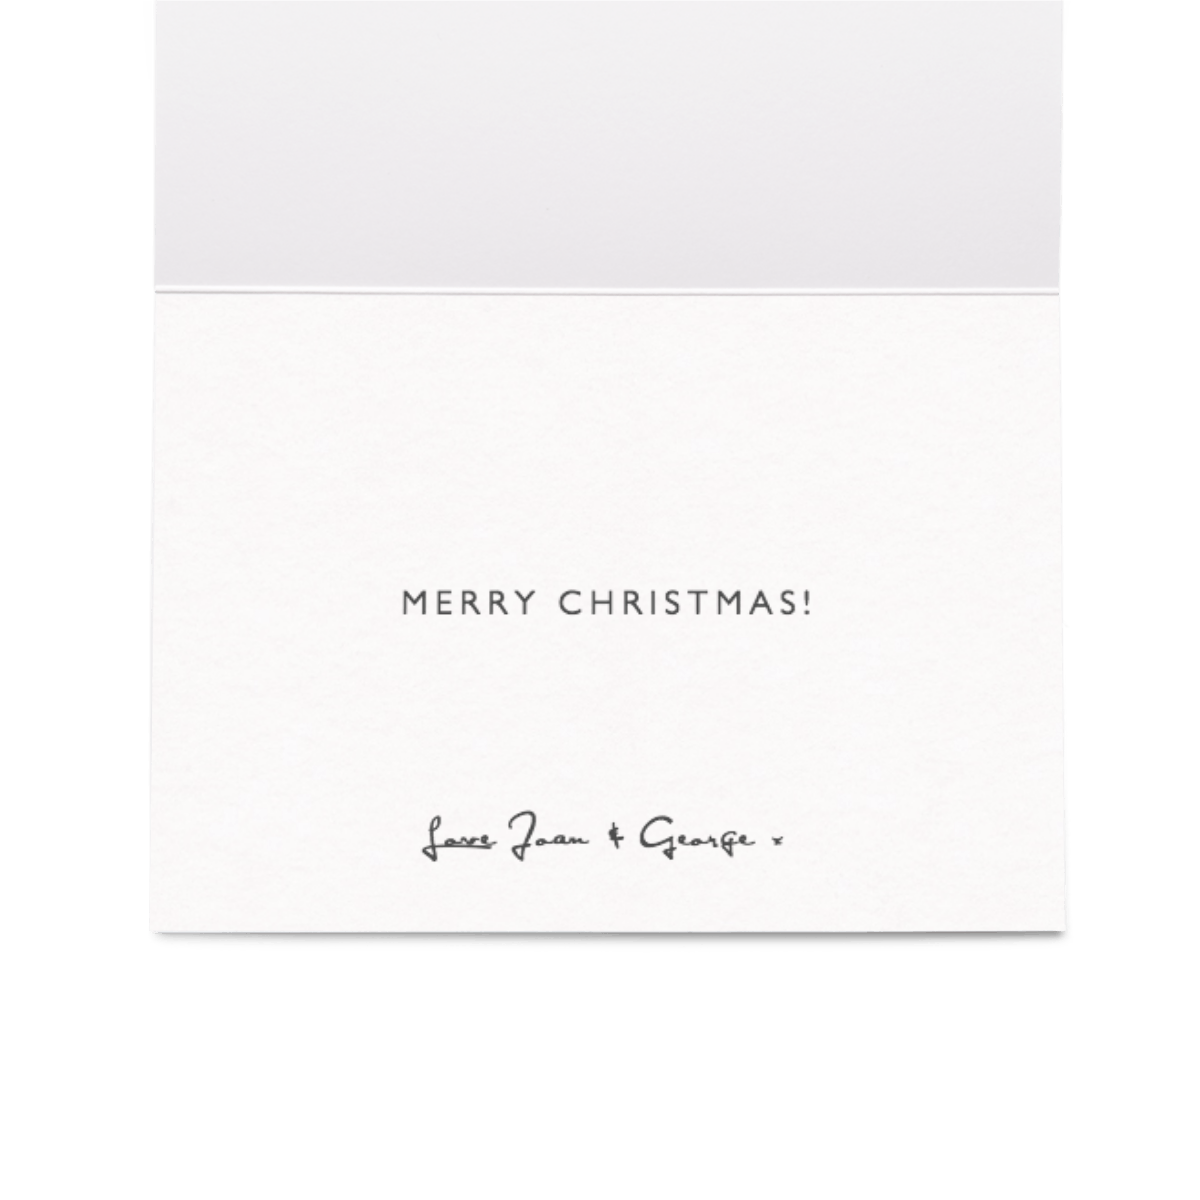 Https%3a%2f%2fwww.papier.com%2fproduct image%2f88750%2f20%2fchristmas collie 22345 inside 1570646595.png?ixlib=rb 1.1